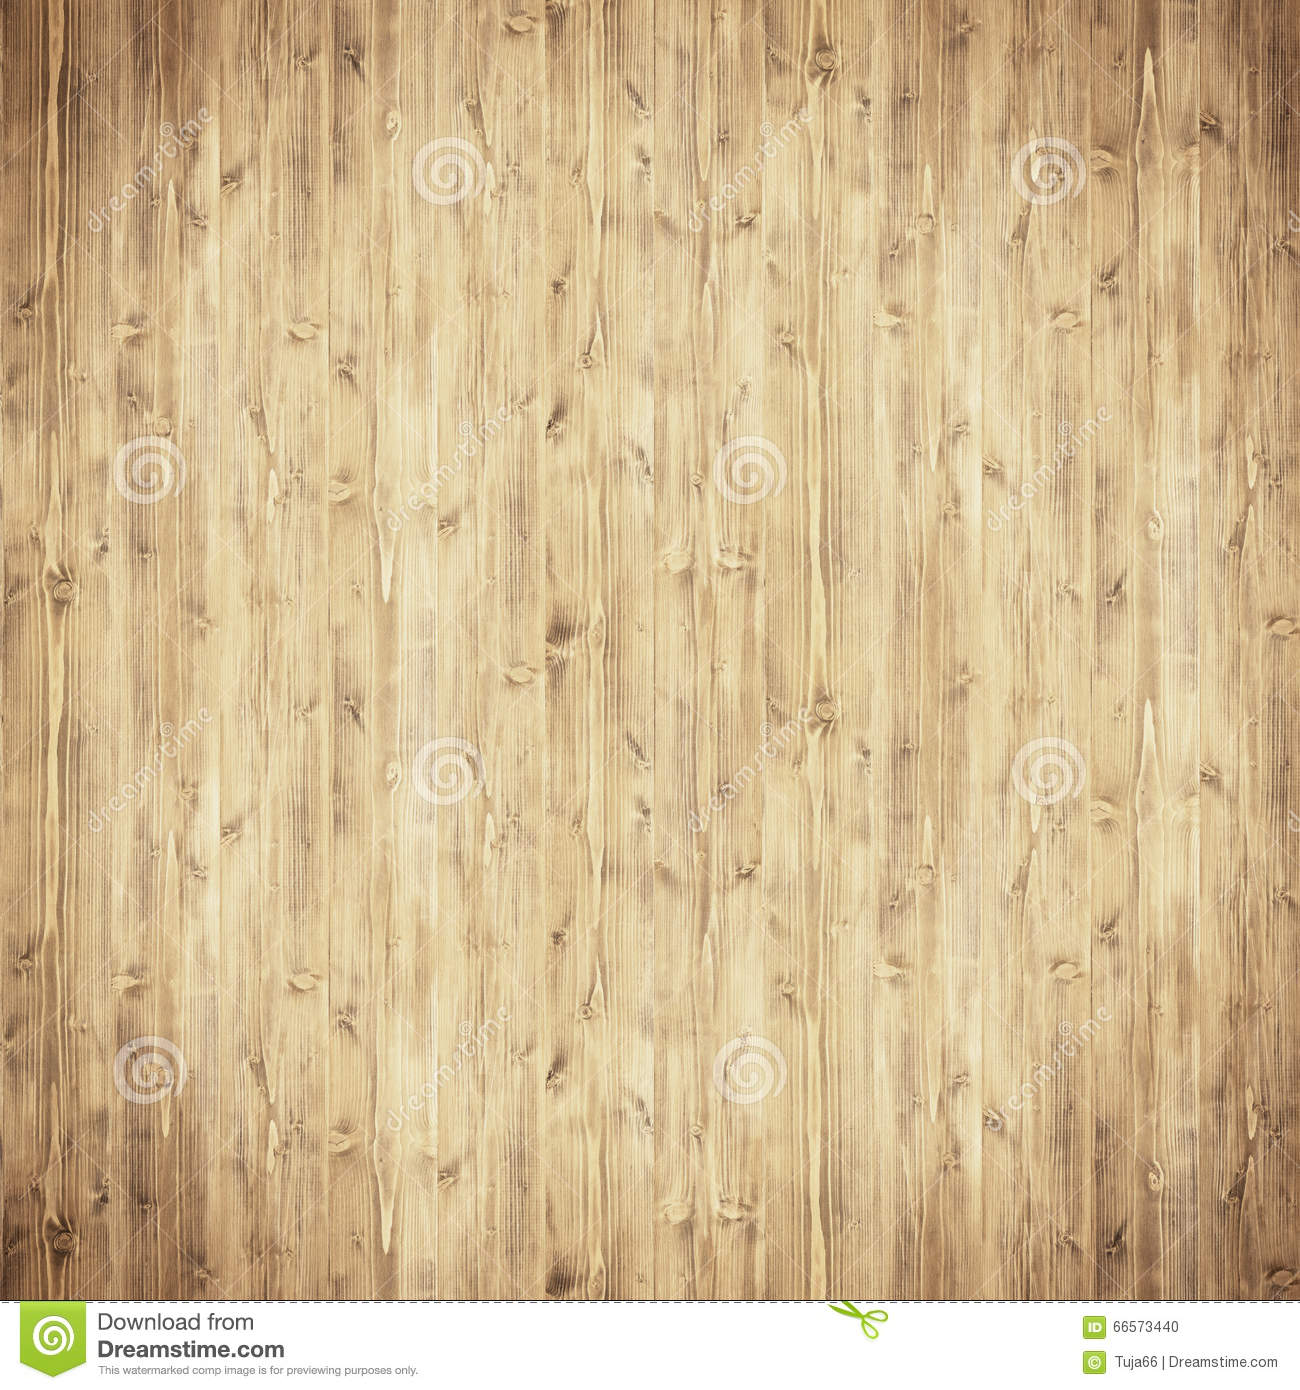 Wood Texture Stock Photo Image 66573440